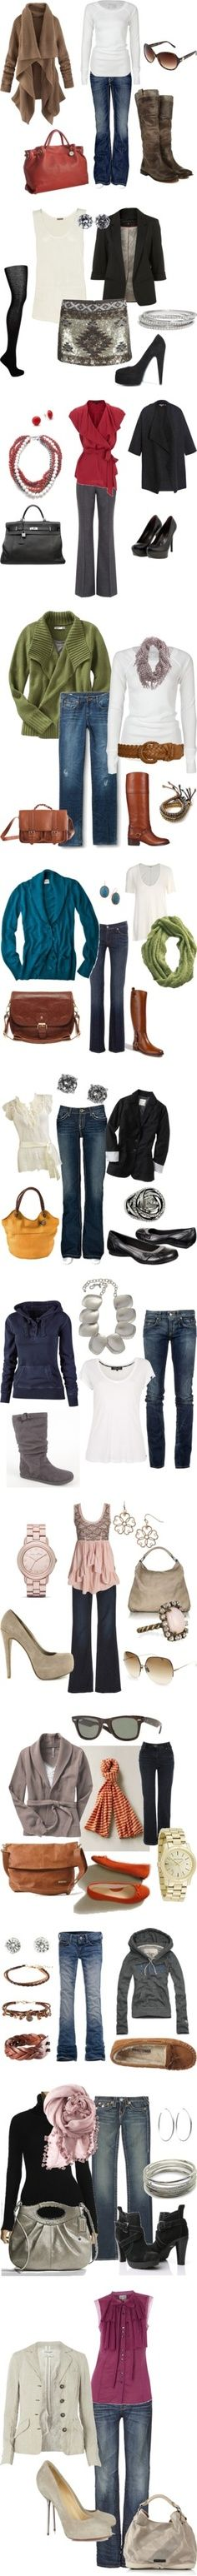 LOLO MODA Trendy Outfits    - See more styles on http://9999lolo.blogspot.com/